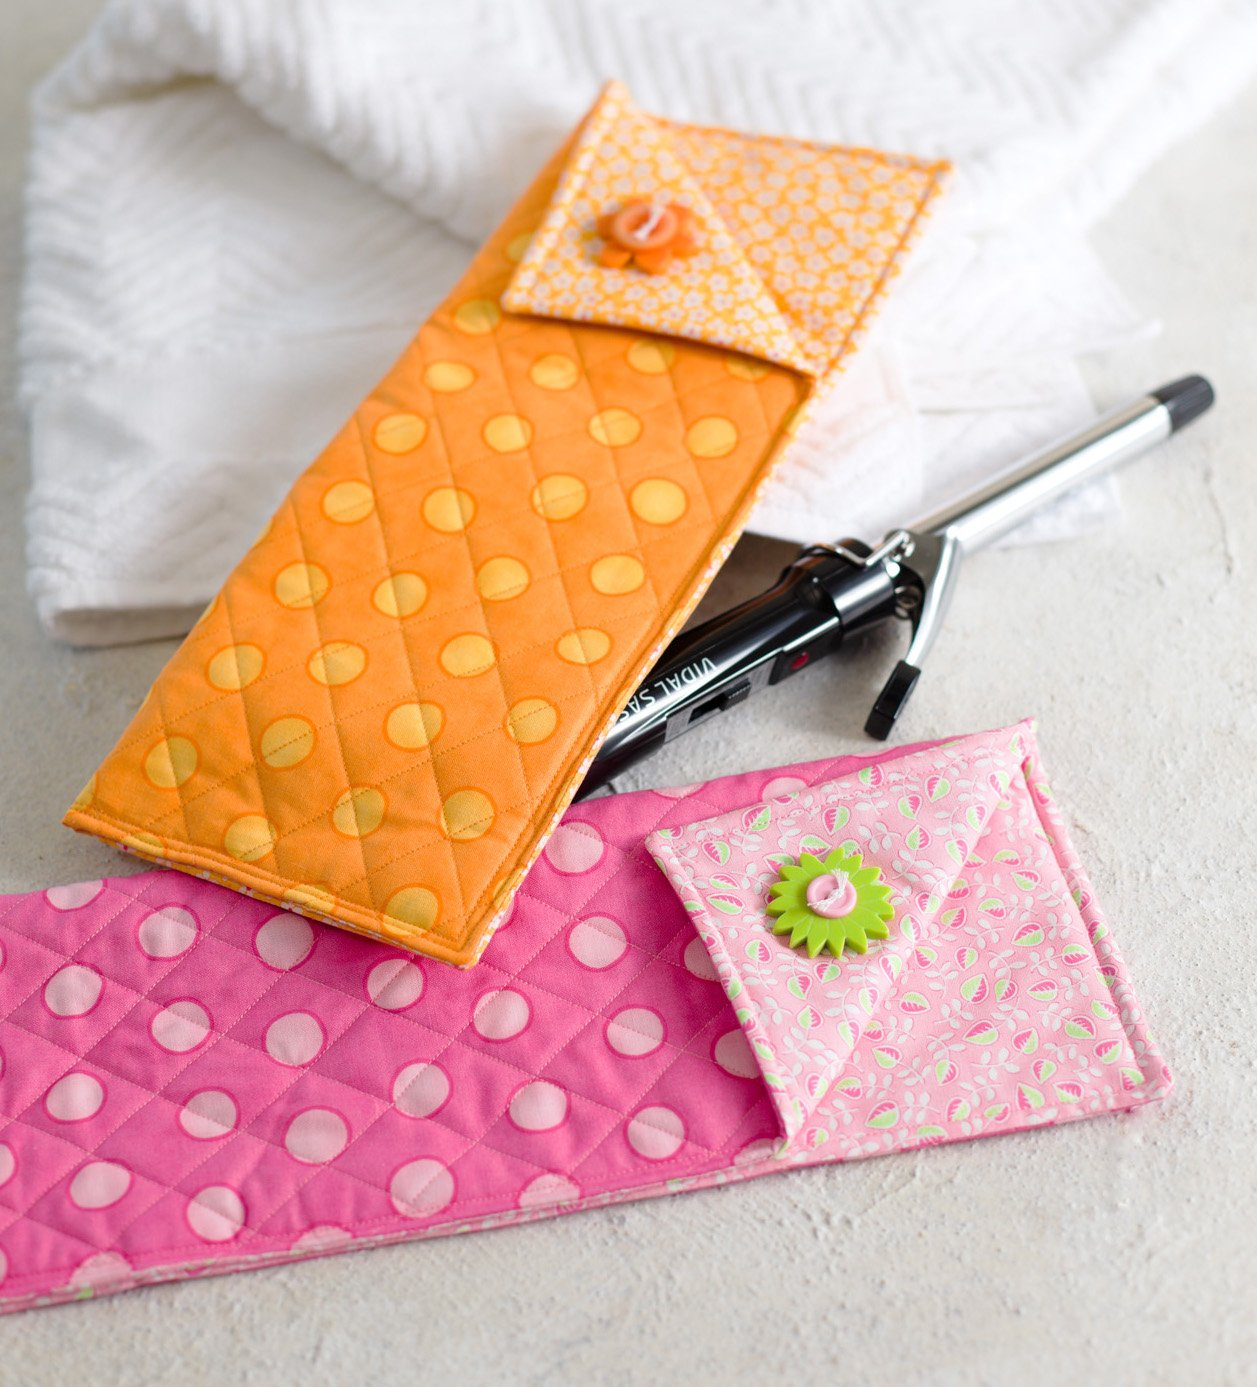 Sew The Perfect Gift 25 Handmade Projects From Top Designers That Patchwork Place 9781604680690 Amazon Books